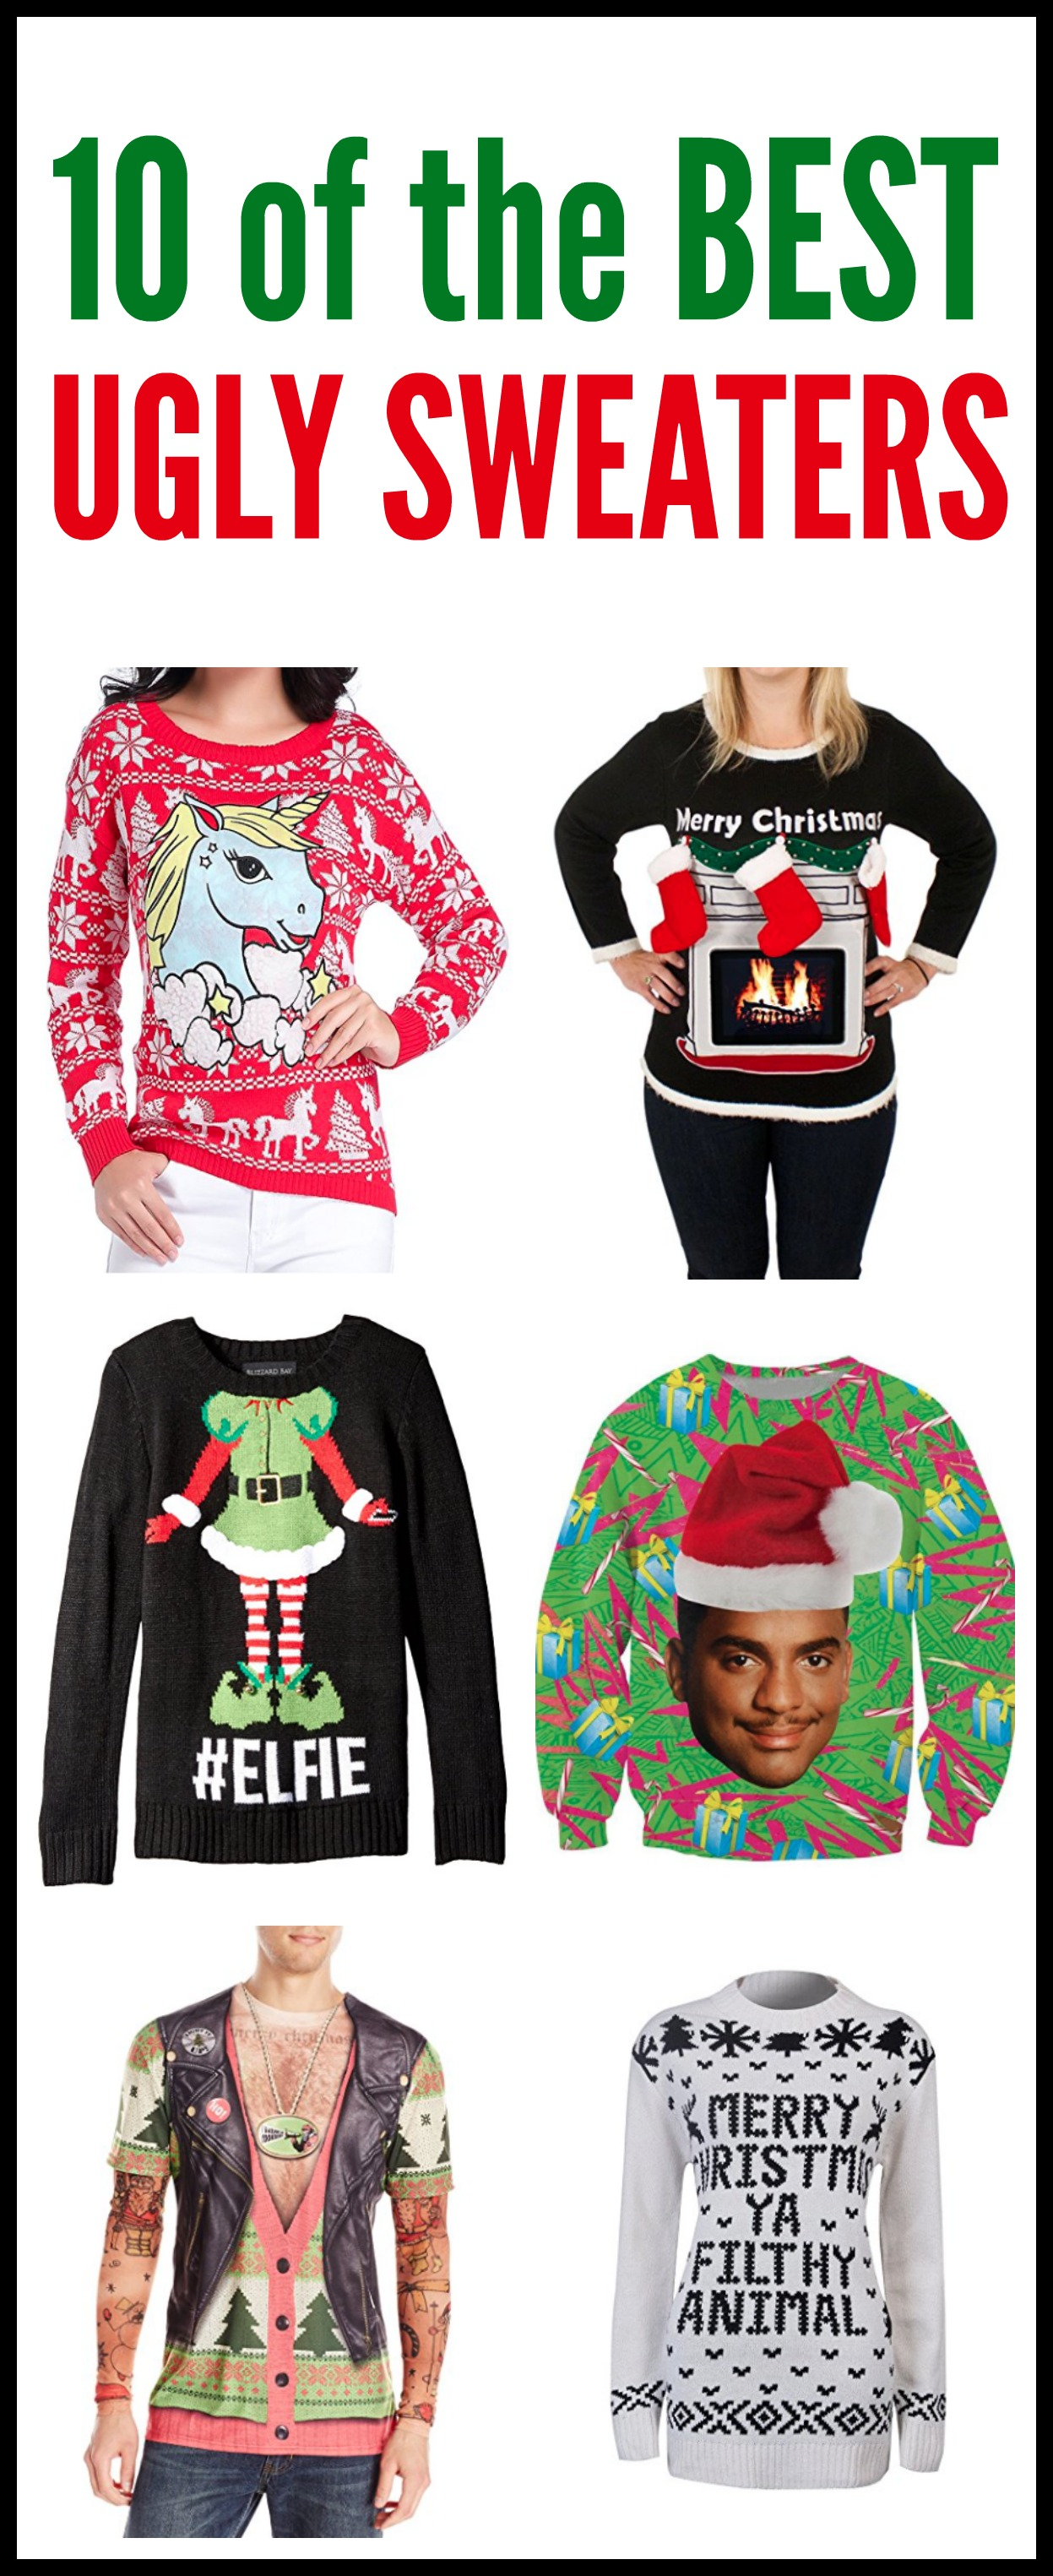 10 of the BEST Ugly Sweaters for Christmas